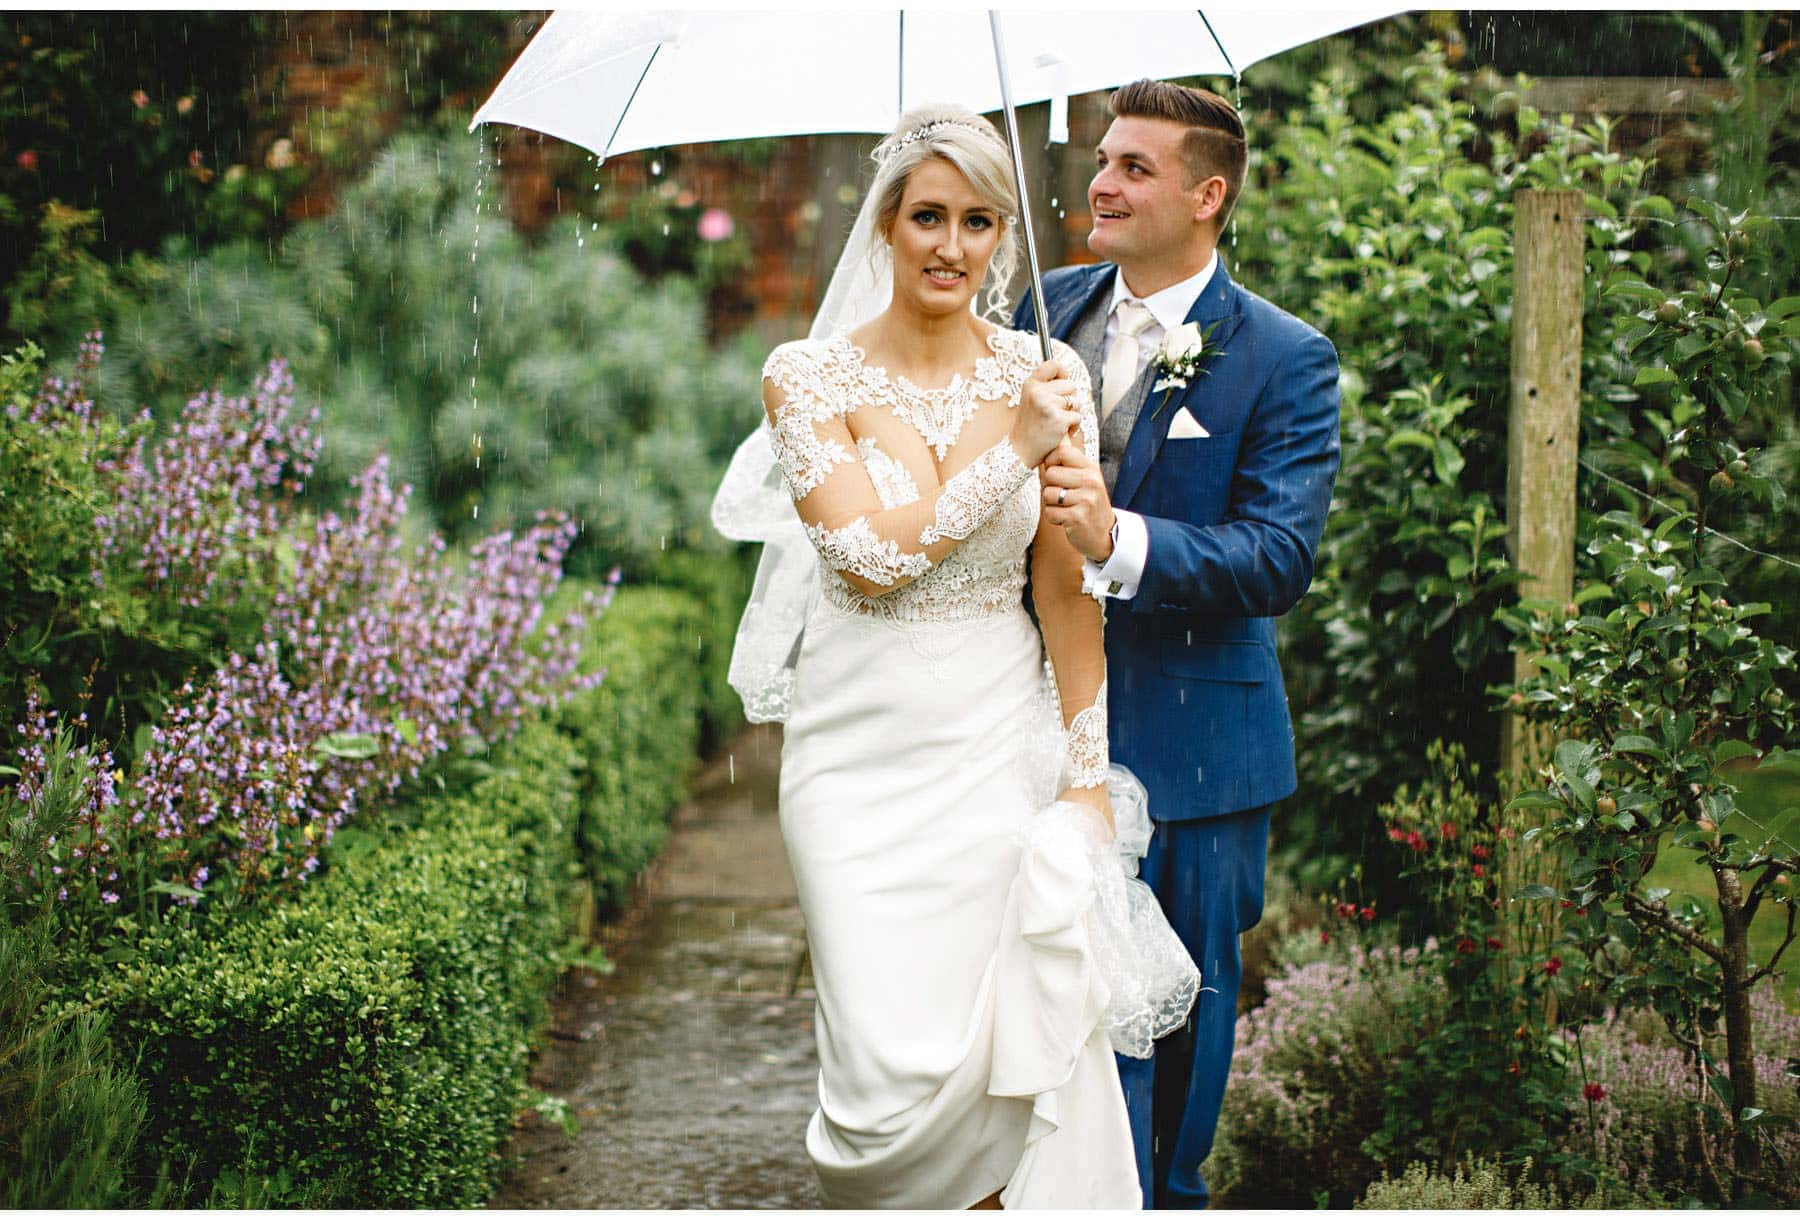 the bride and groom walking in the rain